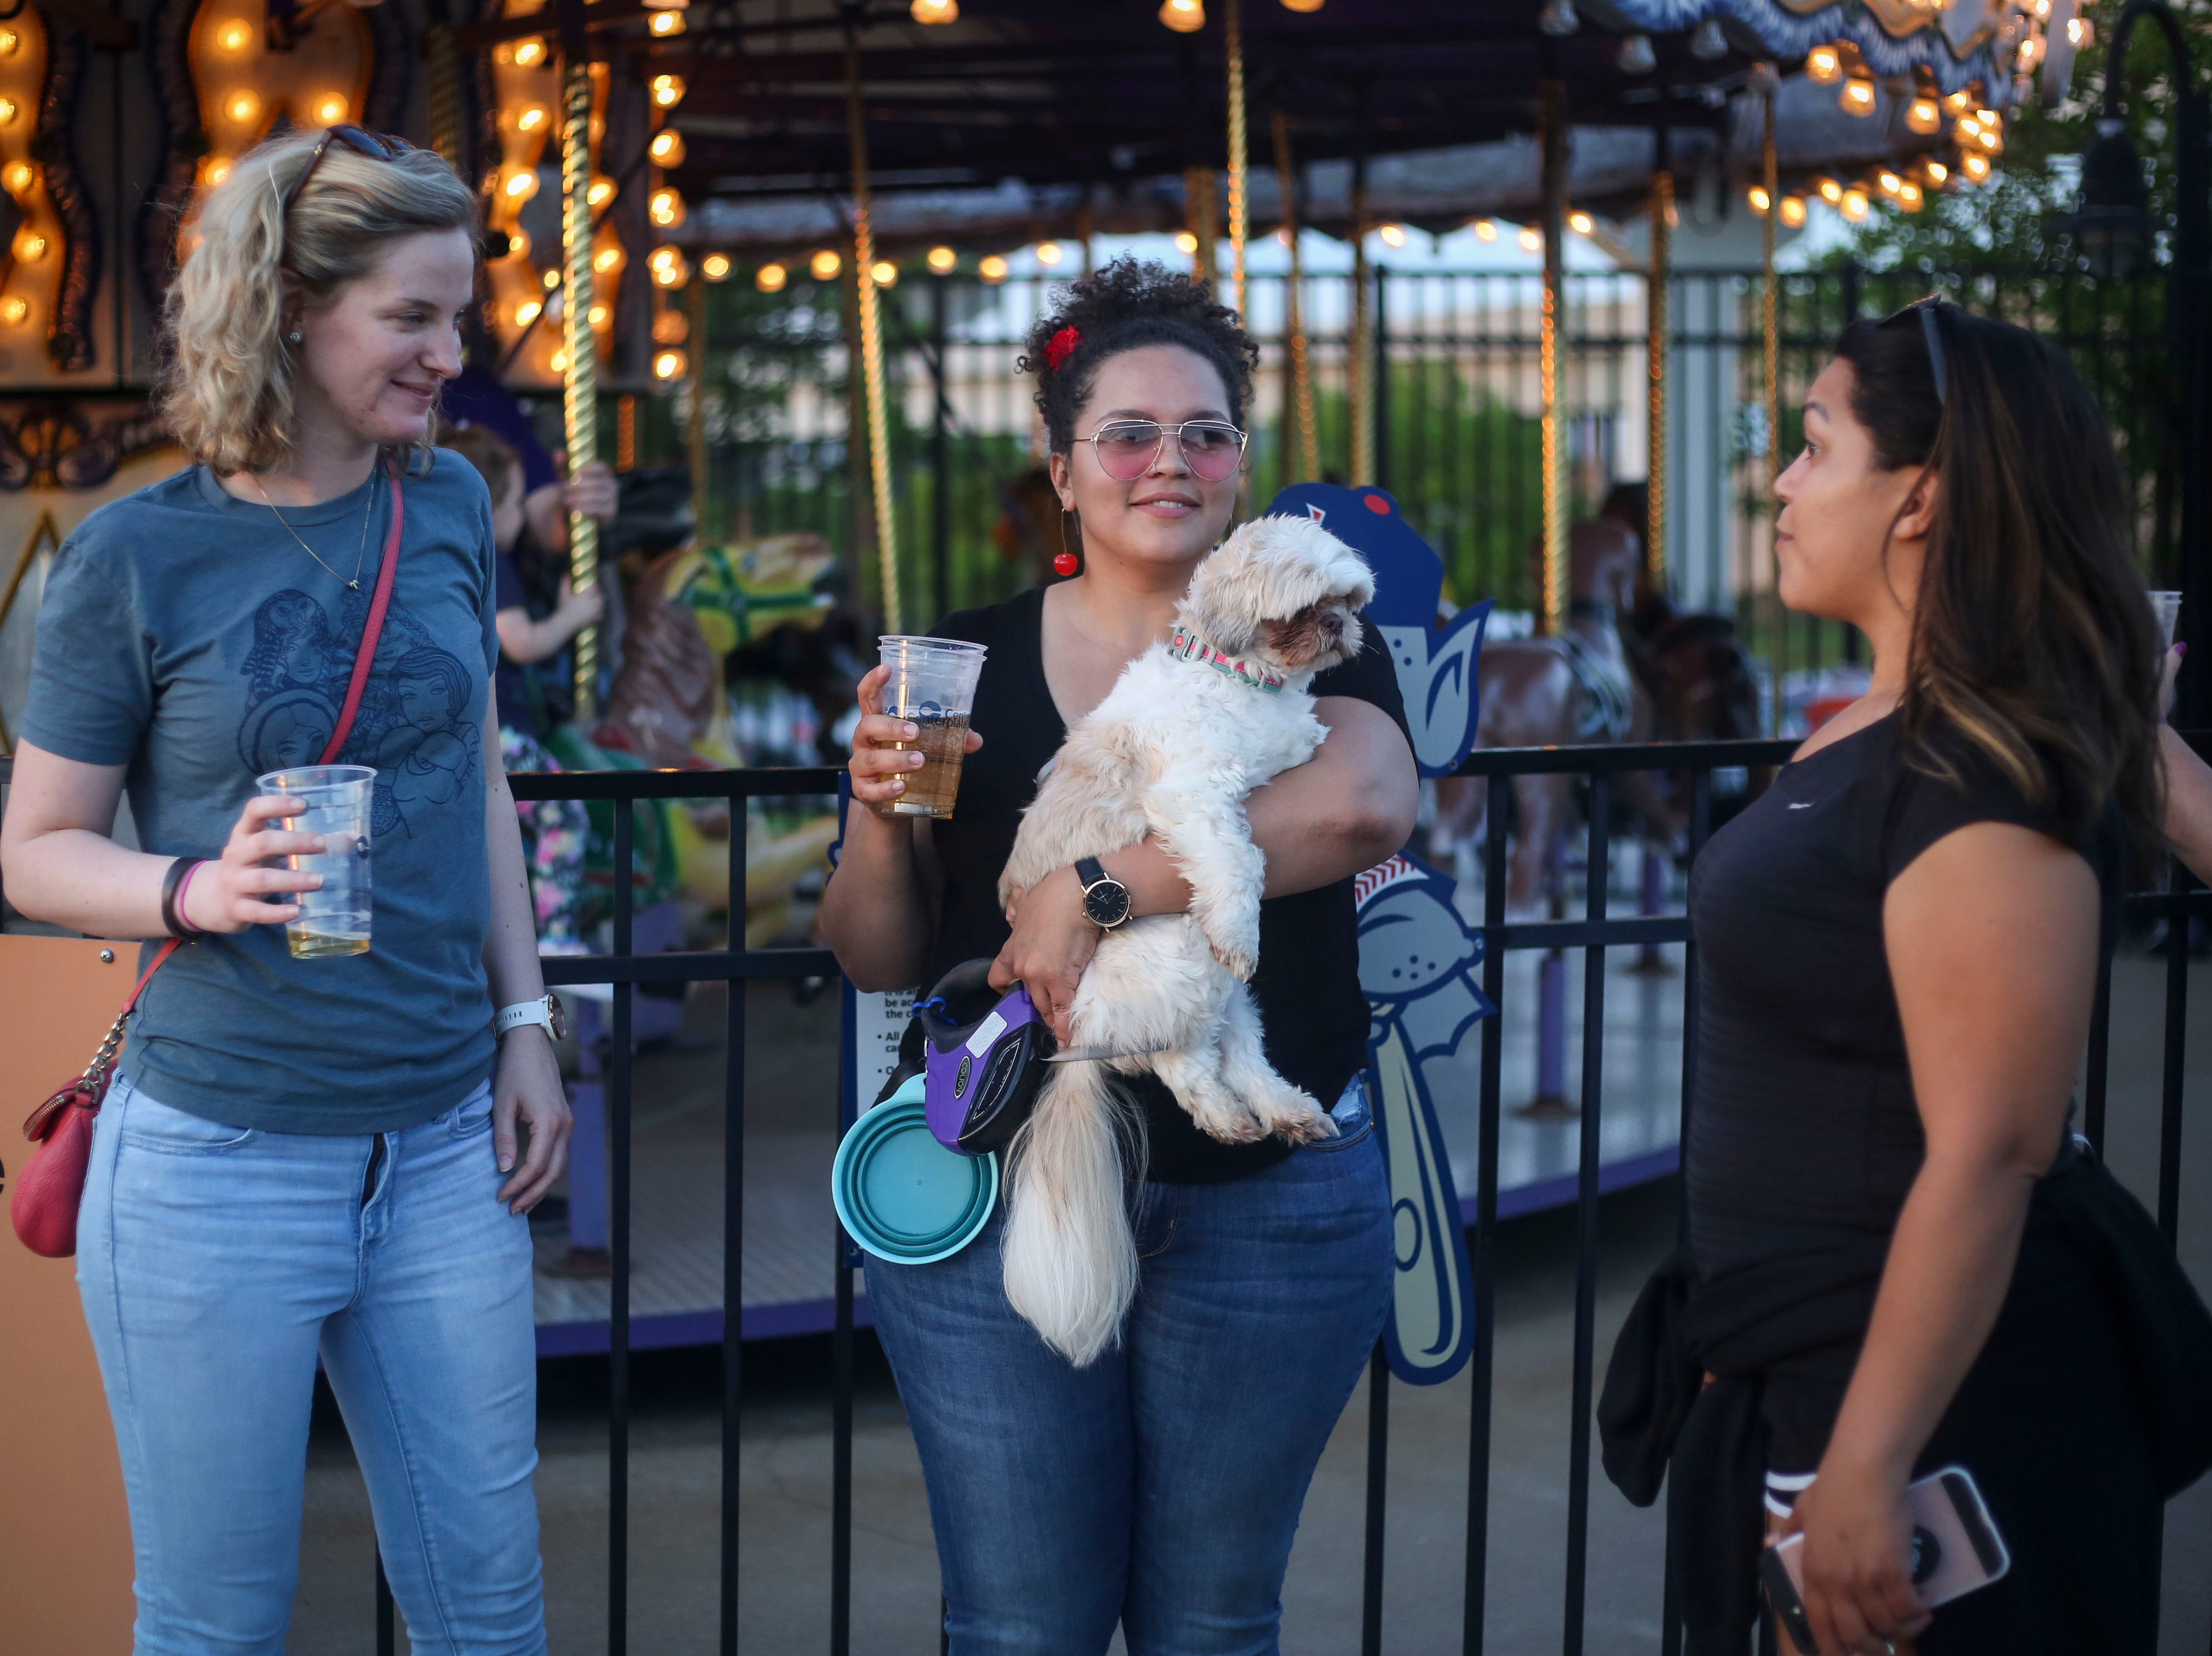 Bridget Smith holds Suge during the Louisville Bats v. Syracuse Mets game during Dog Day Nights at Louisville Slugger Field in downtown Louisville, Ky. on Tuesday, May 7, 2019.